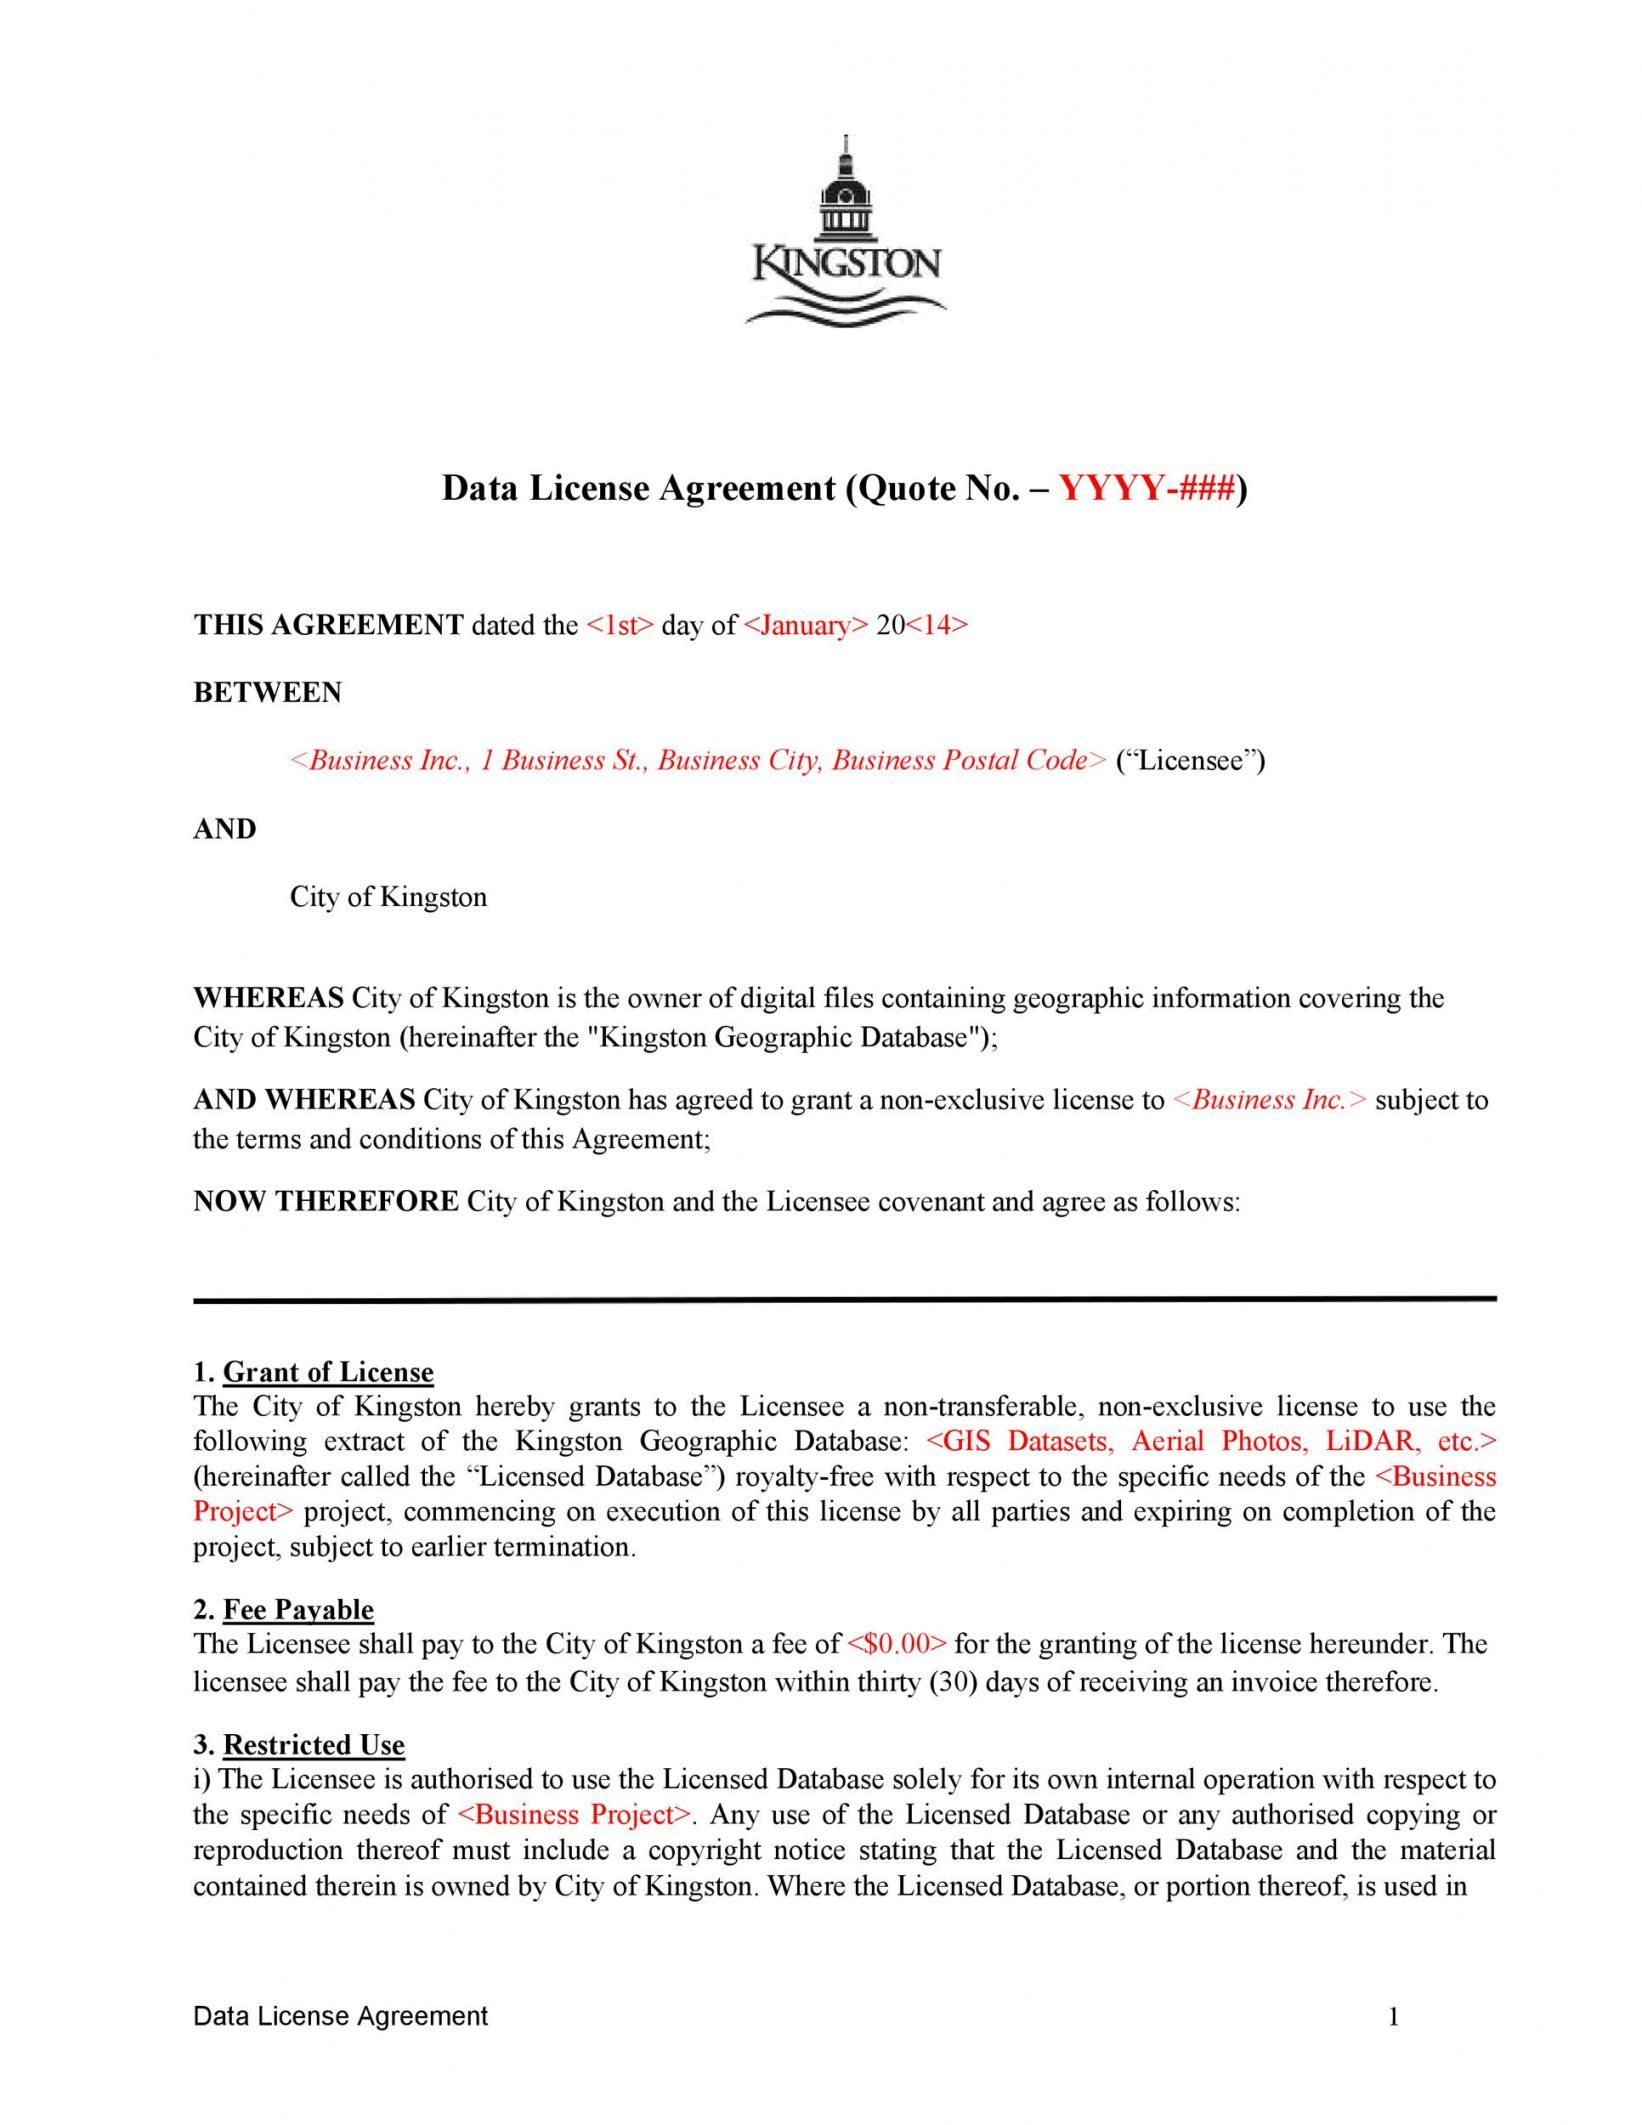 Browse Our Sample Of Royalty Free License Agreement Template For Free Photography License Agreement Quote Agreement Royalty free license agreement template